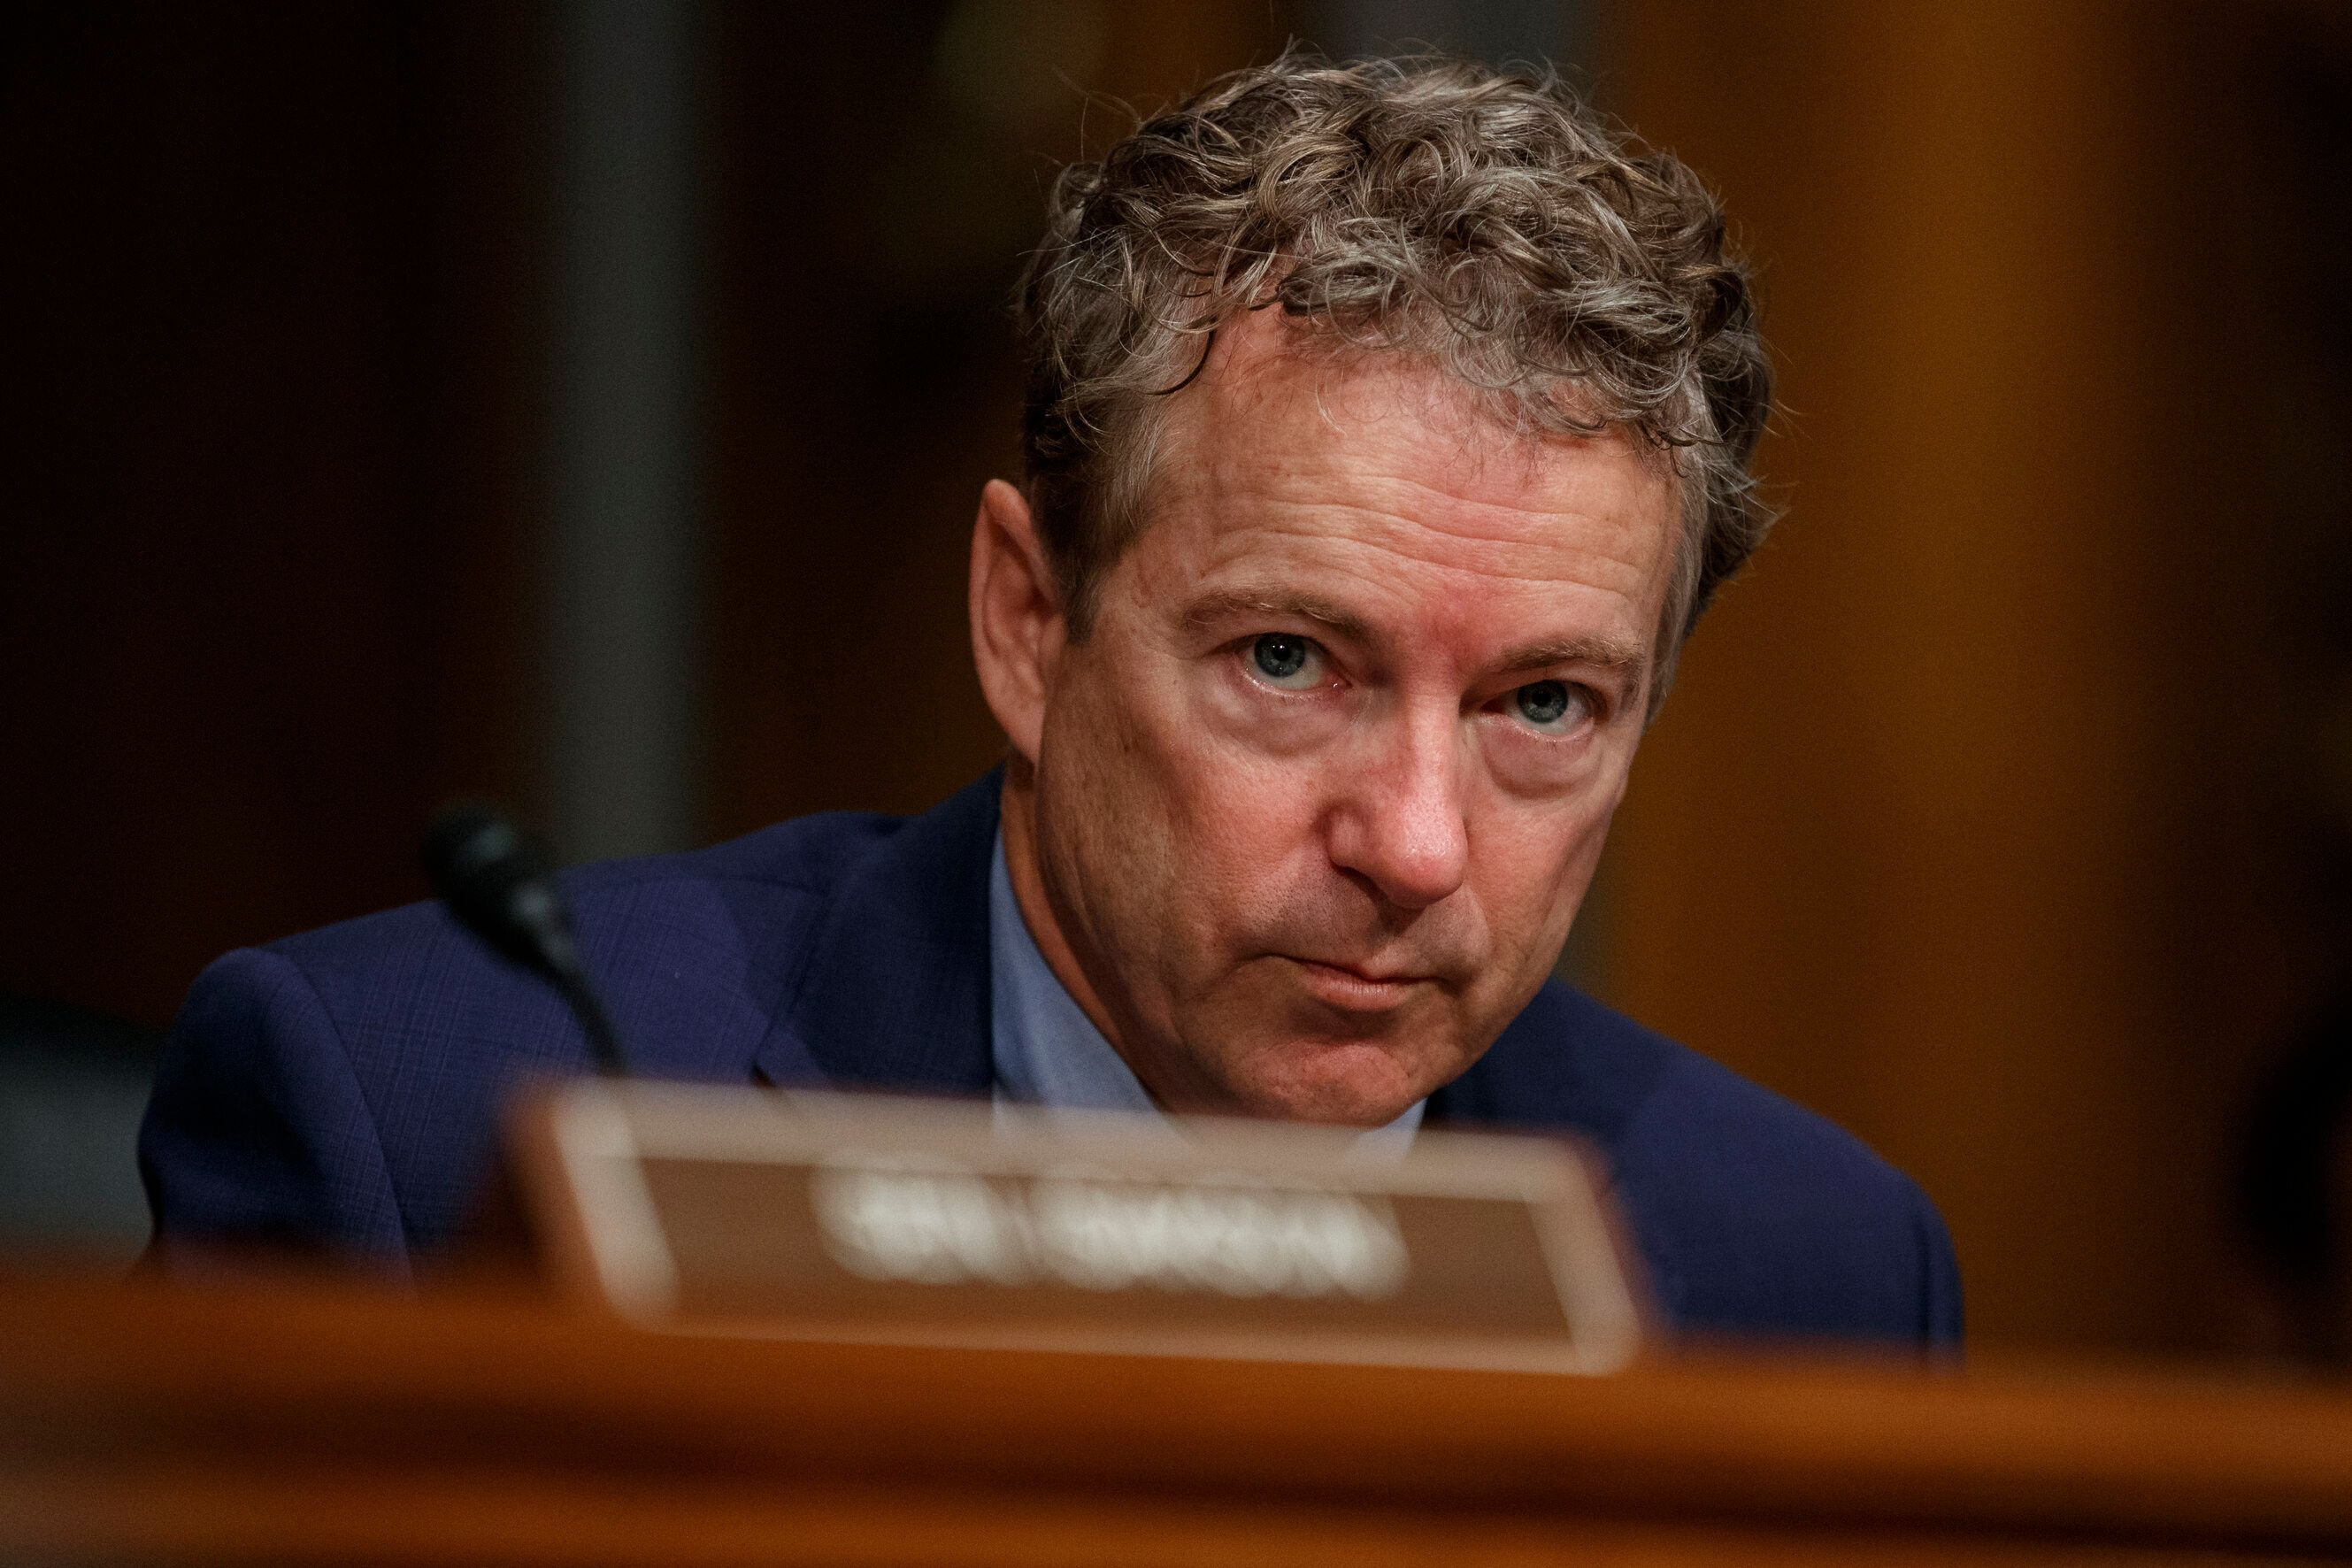 File-This March 5, 2019, file photo shows Sen. Rand Paul, R-Ky., pausing during a Senate Committee on Health, Education, Labor, and Pensions hearing on Capitol Hill in Washington.  A Kentucky judge has denied a request for a new trial from a man who a jury said should pay more than $580,000 to Paul for injuries Paul suffered when he was tackled by the man. The Daily News of Bowling Green reports Special Judge Tyler Gill rejected a motion Thursday, March 21, 2019, from Rene Boucher's lawyer and said the jury award wasn't excessive considering Boucher's conduct and Paul's injuries. (AP Photo/Carolyn Kaster, File)